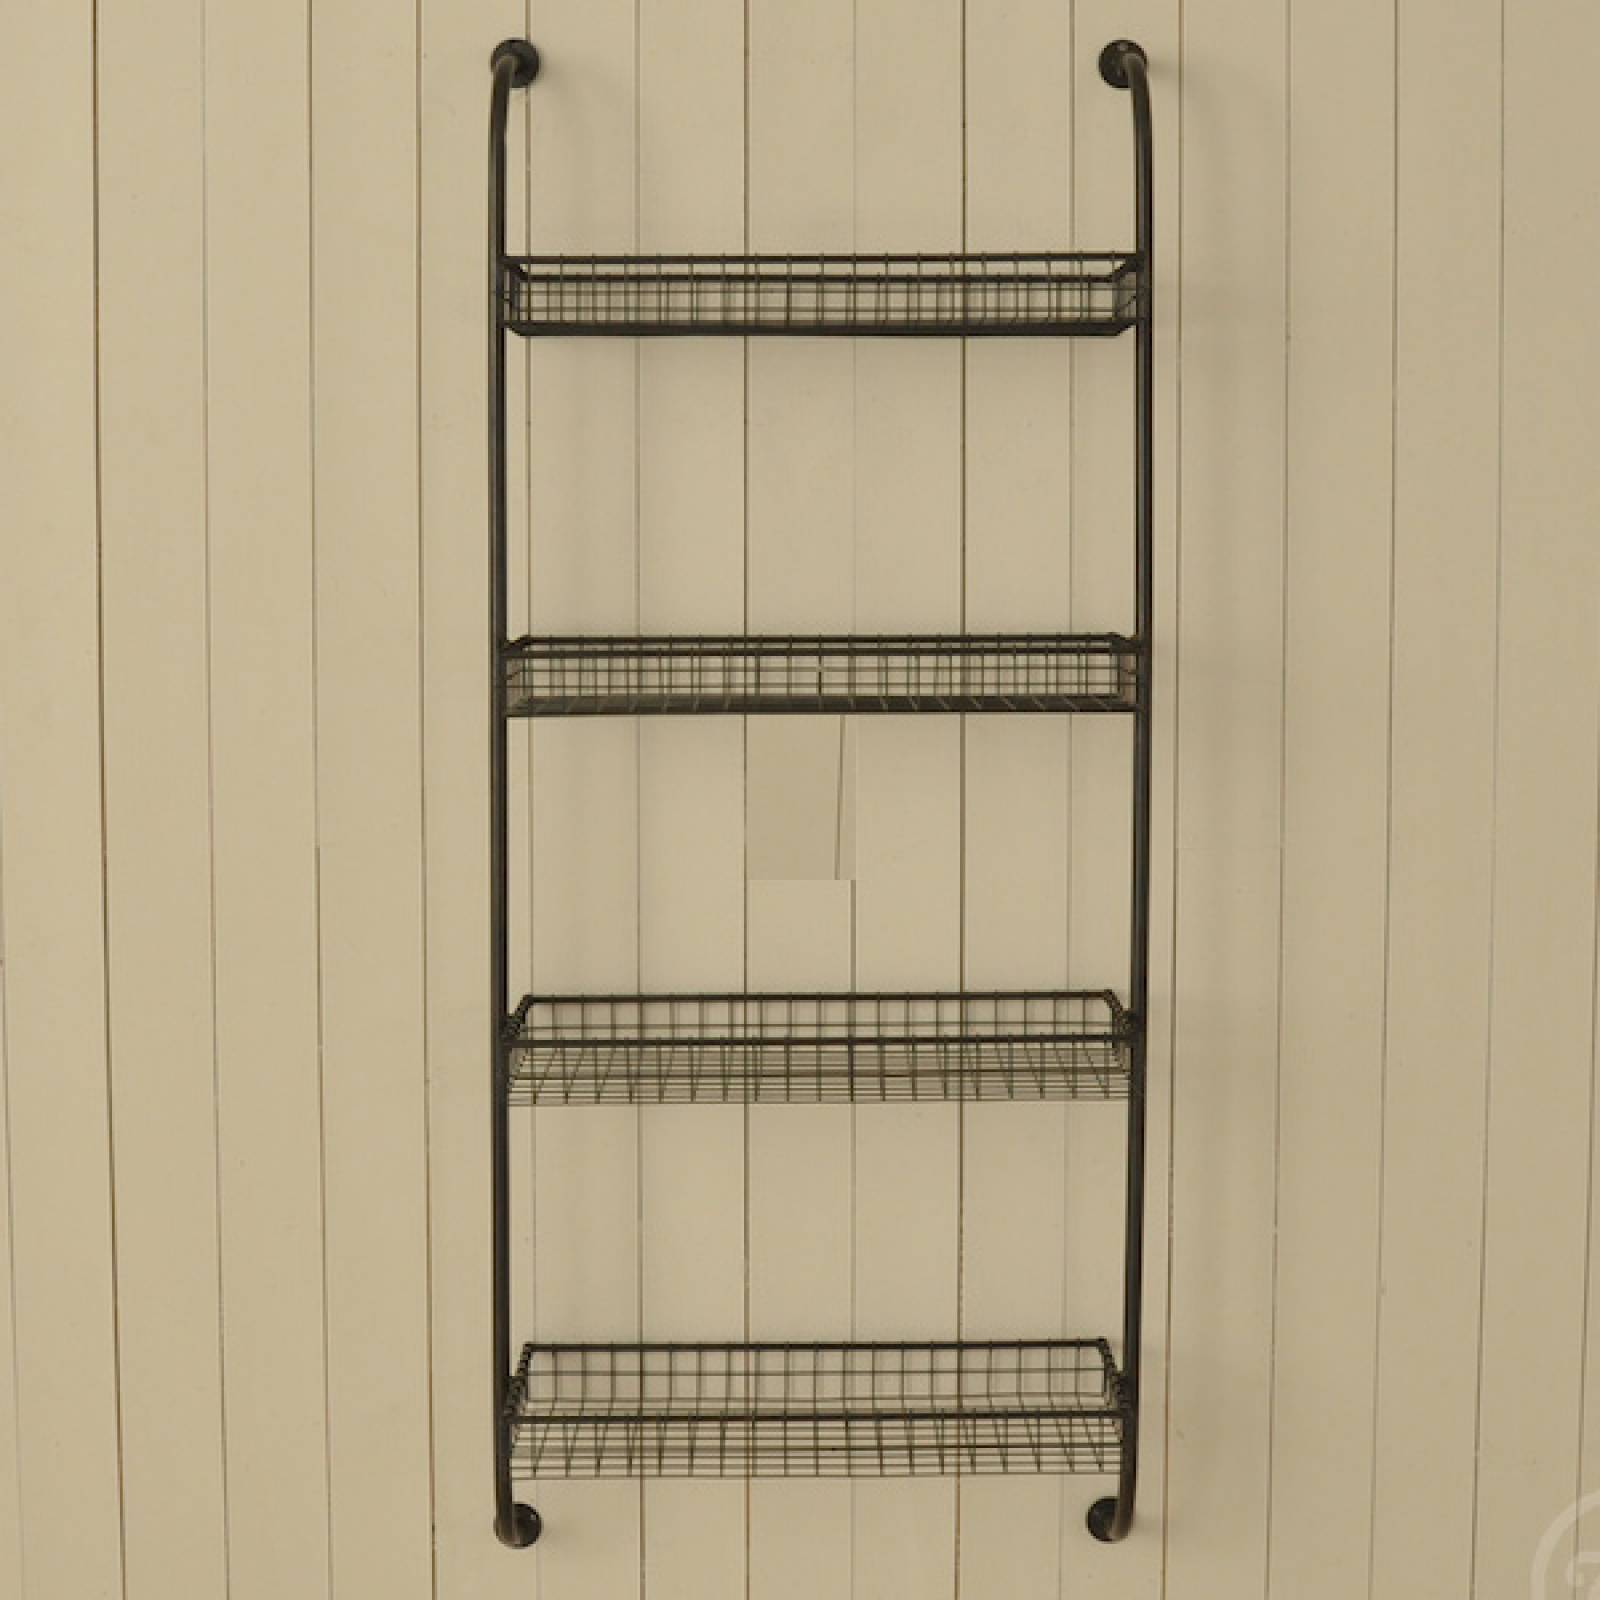 Wall Mounting Shelf Unit With 4 Wire Shelves